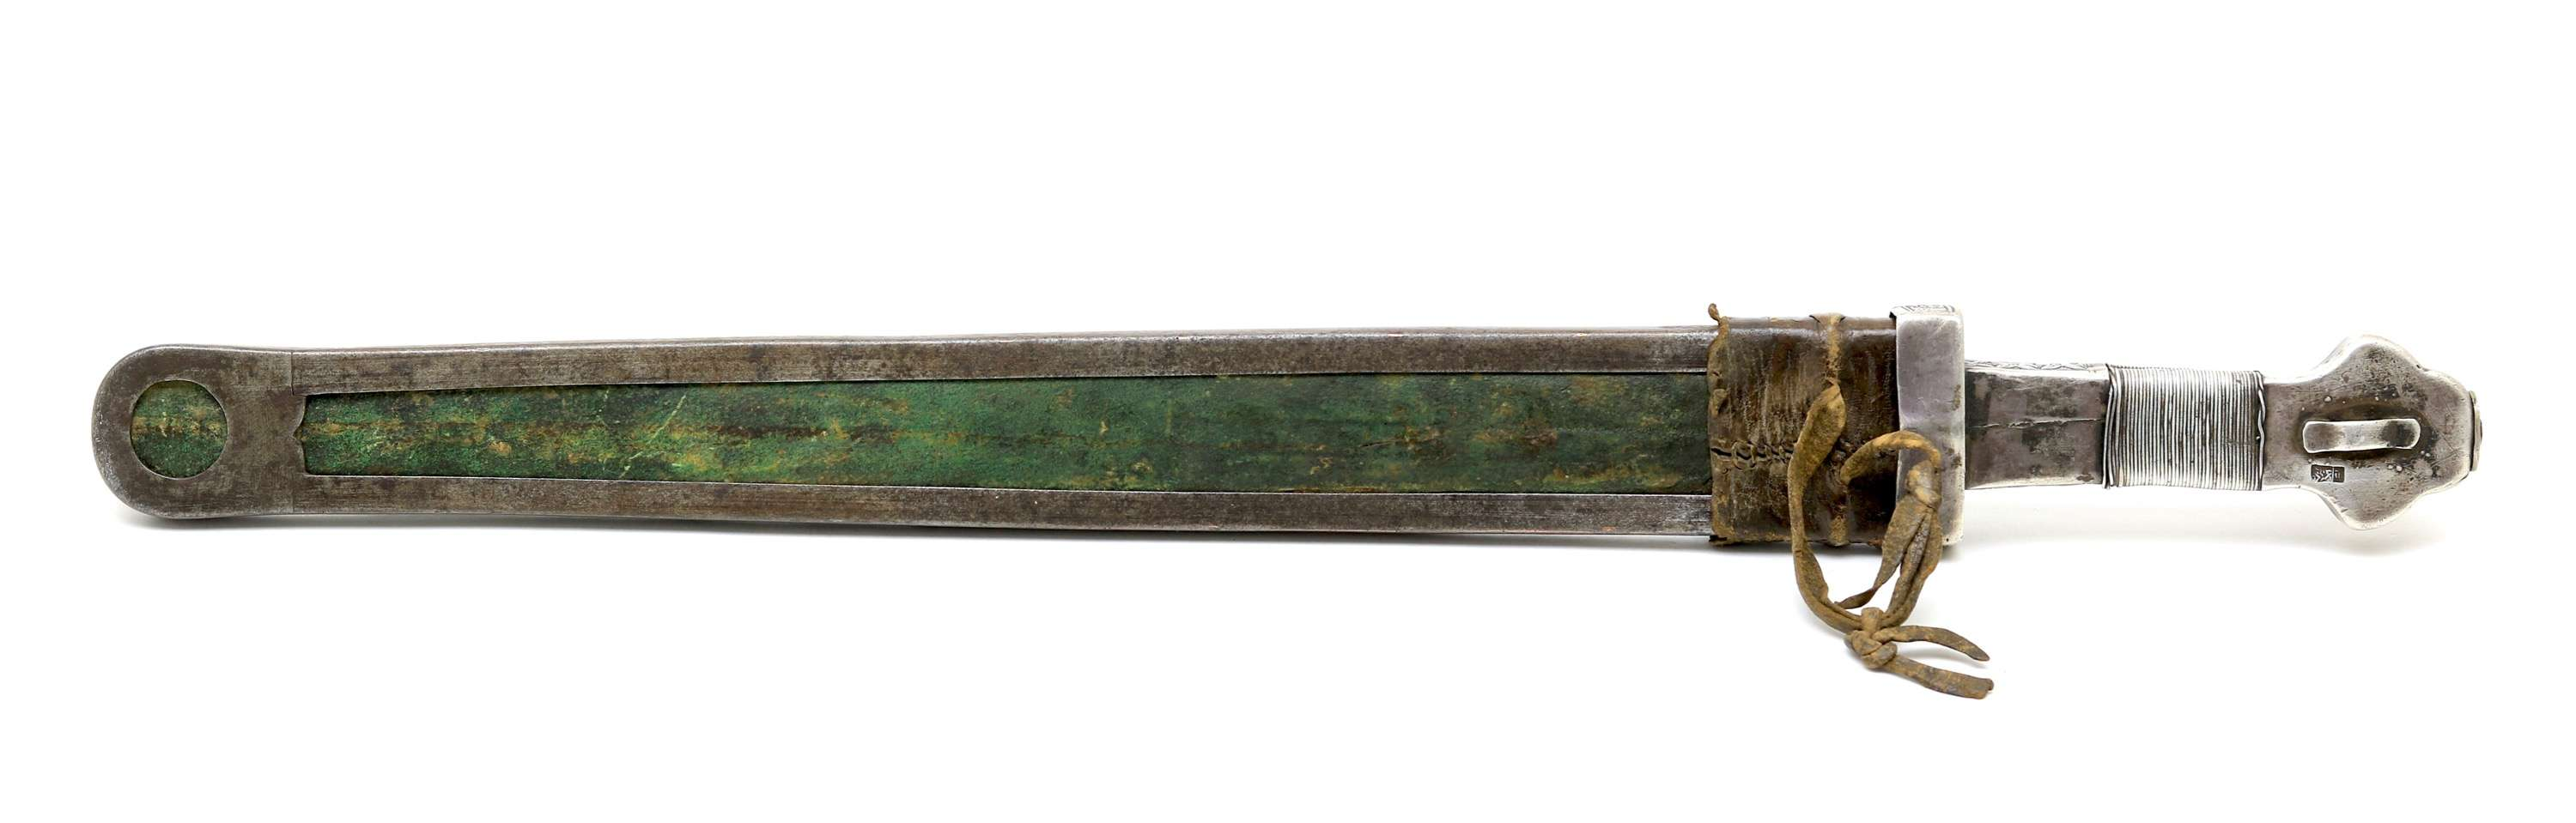 Tibetan silver hilted shortsword